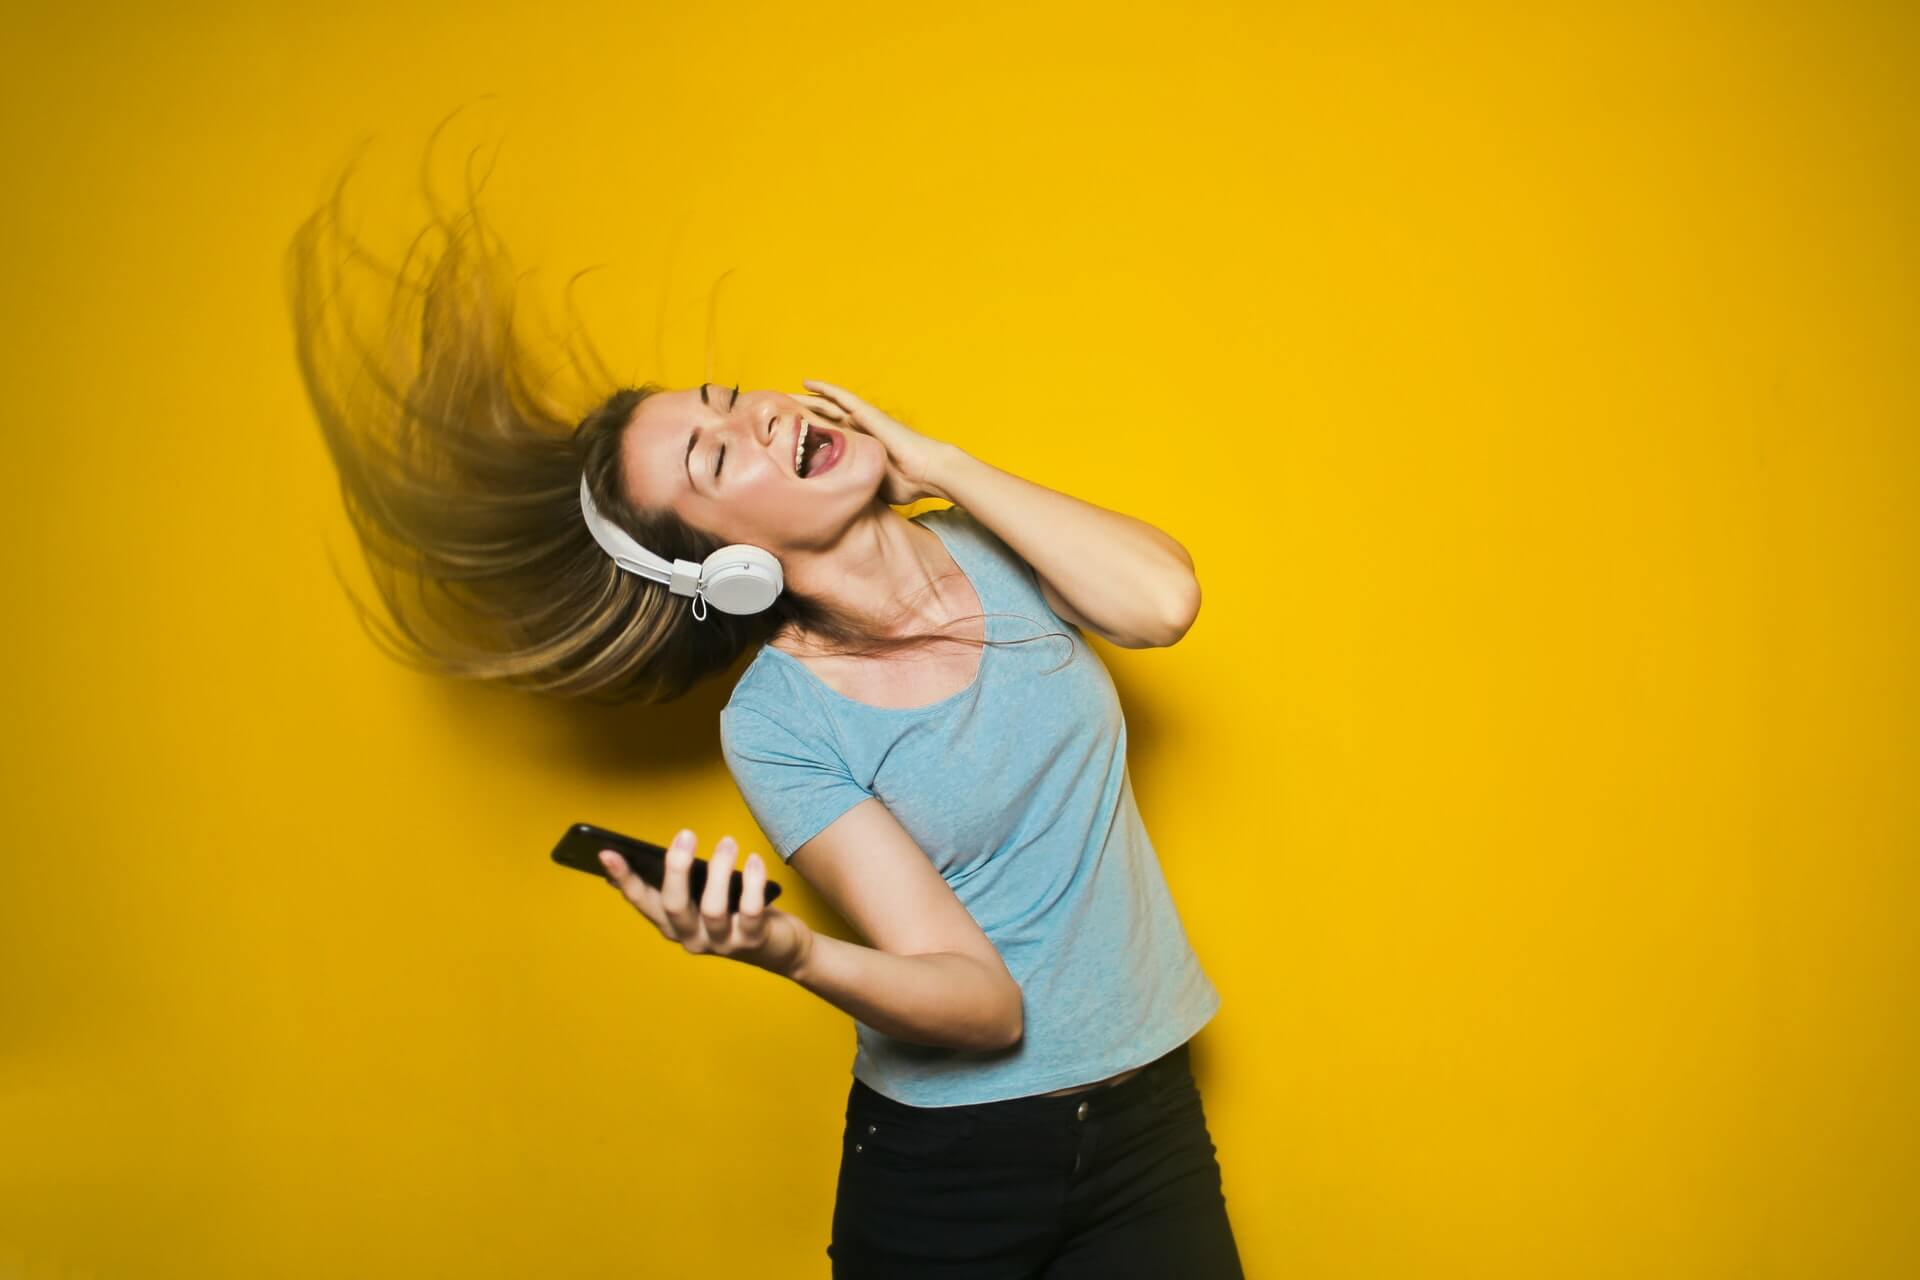 listening to loud music can result in hearing loss